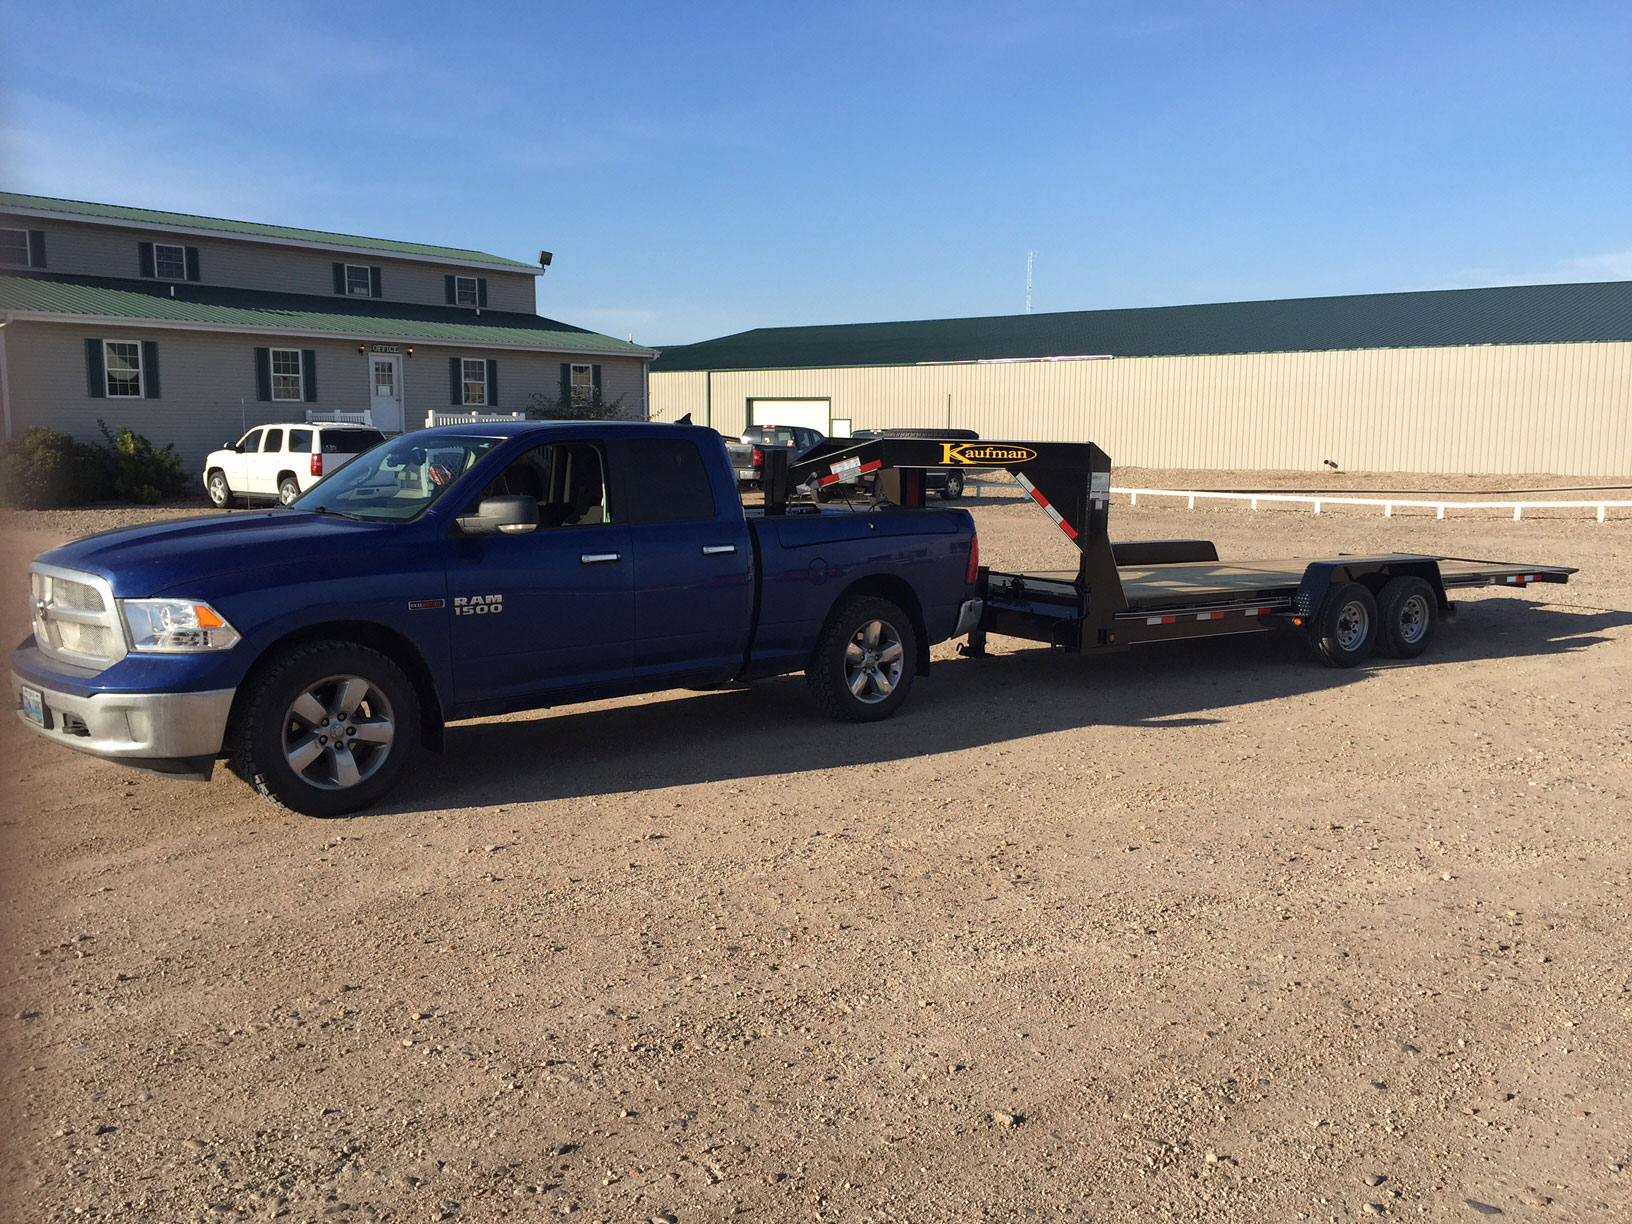 Heavy Duty Towing! The Little Tank - EcoDiesel - Can Do it!-tow1.jpg